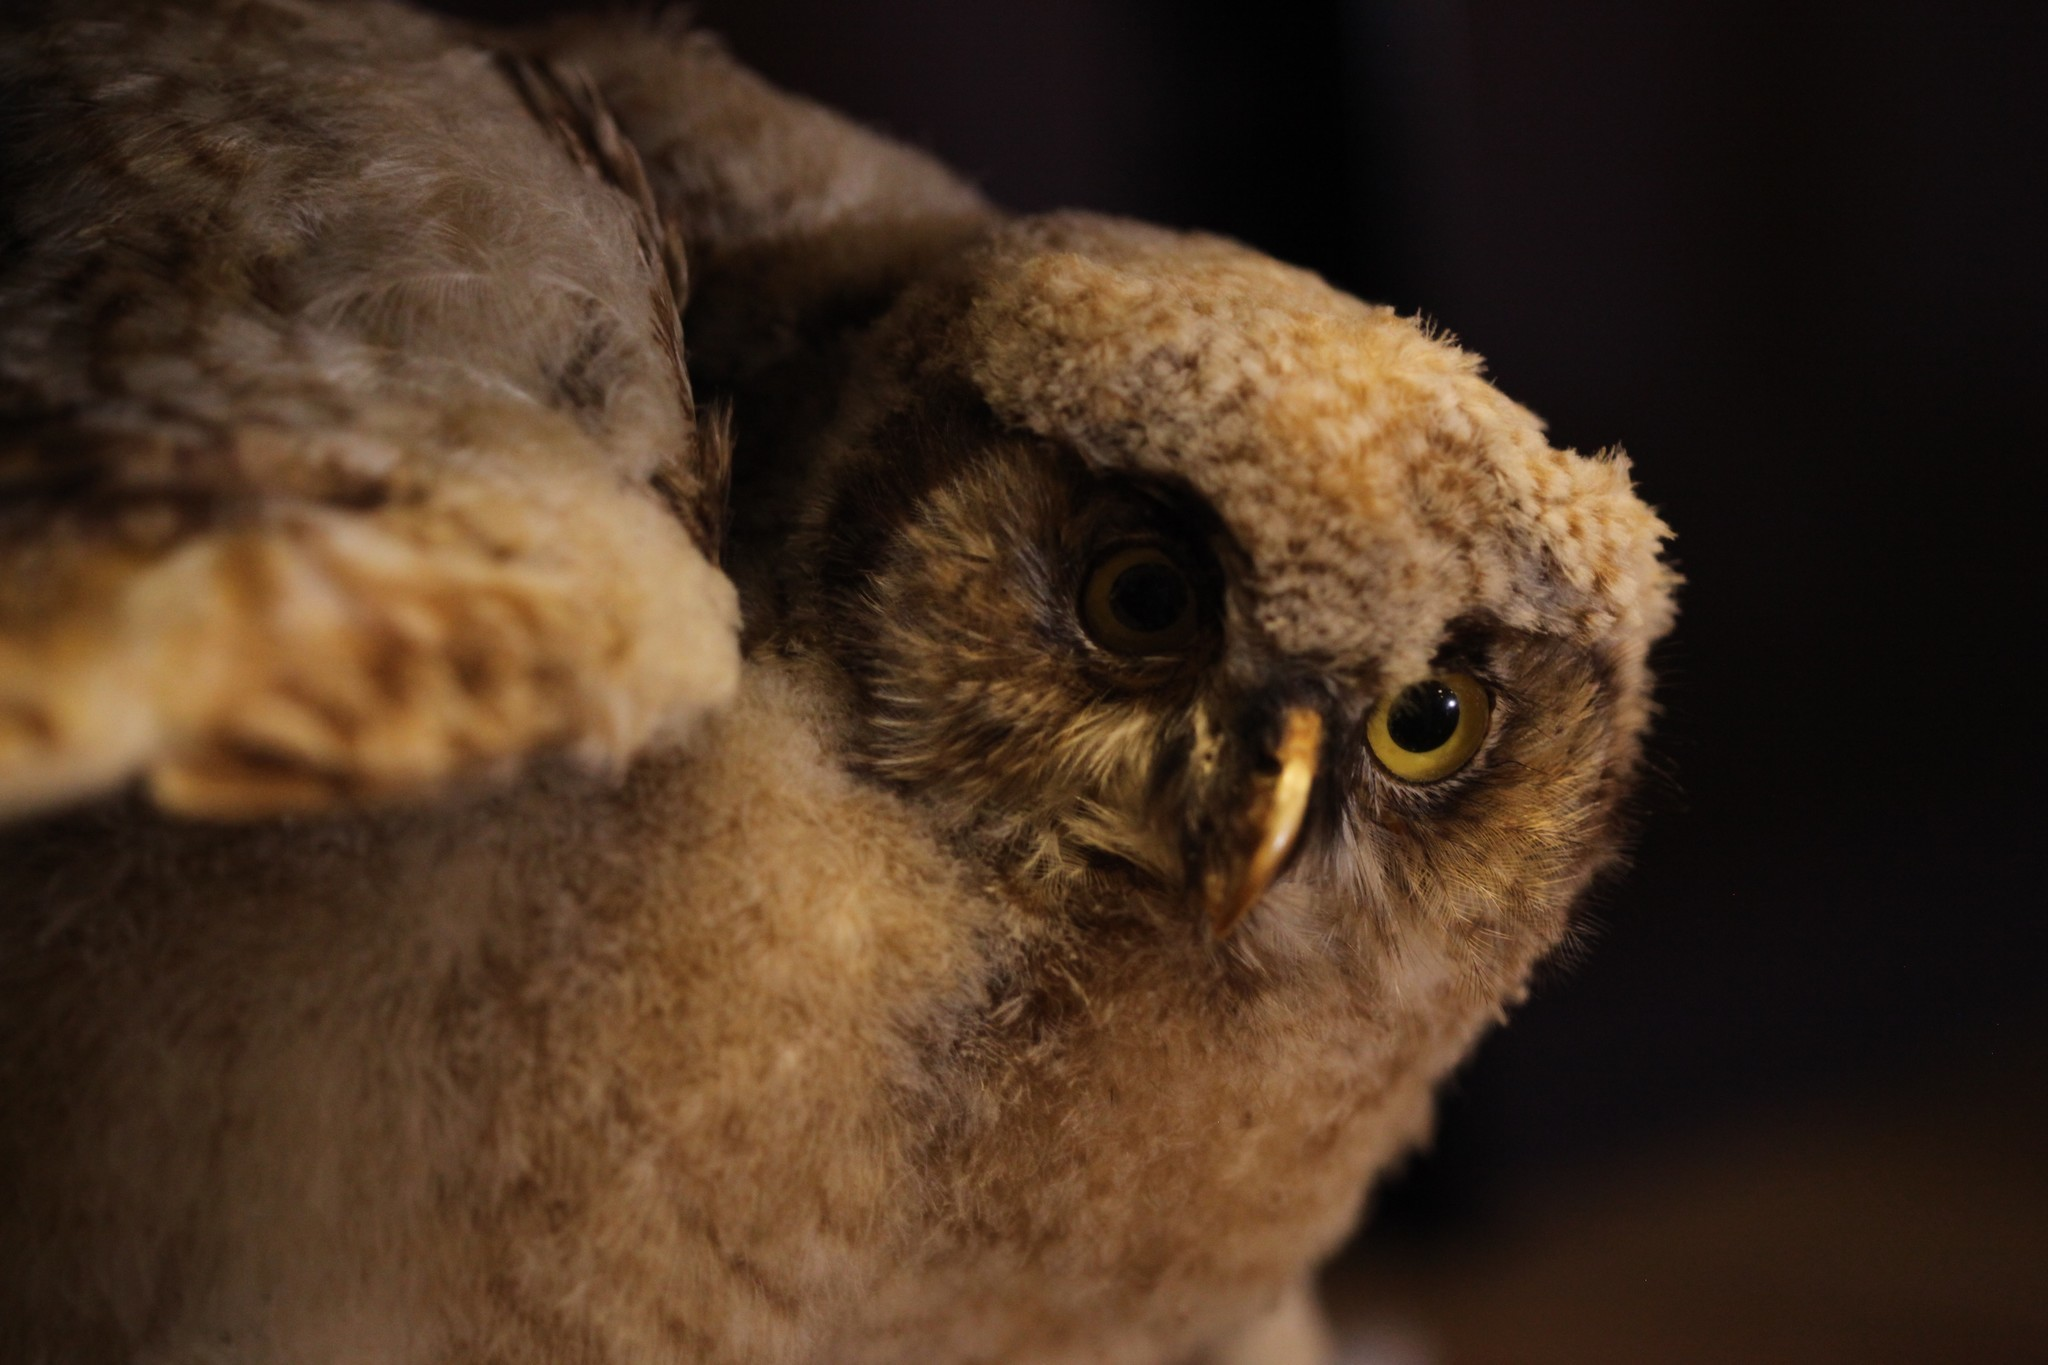 A taxidermy owl peers across the room as if looking for prey in the wild.